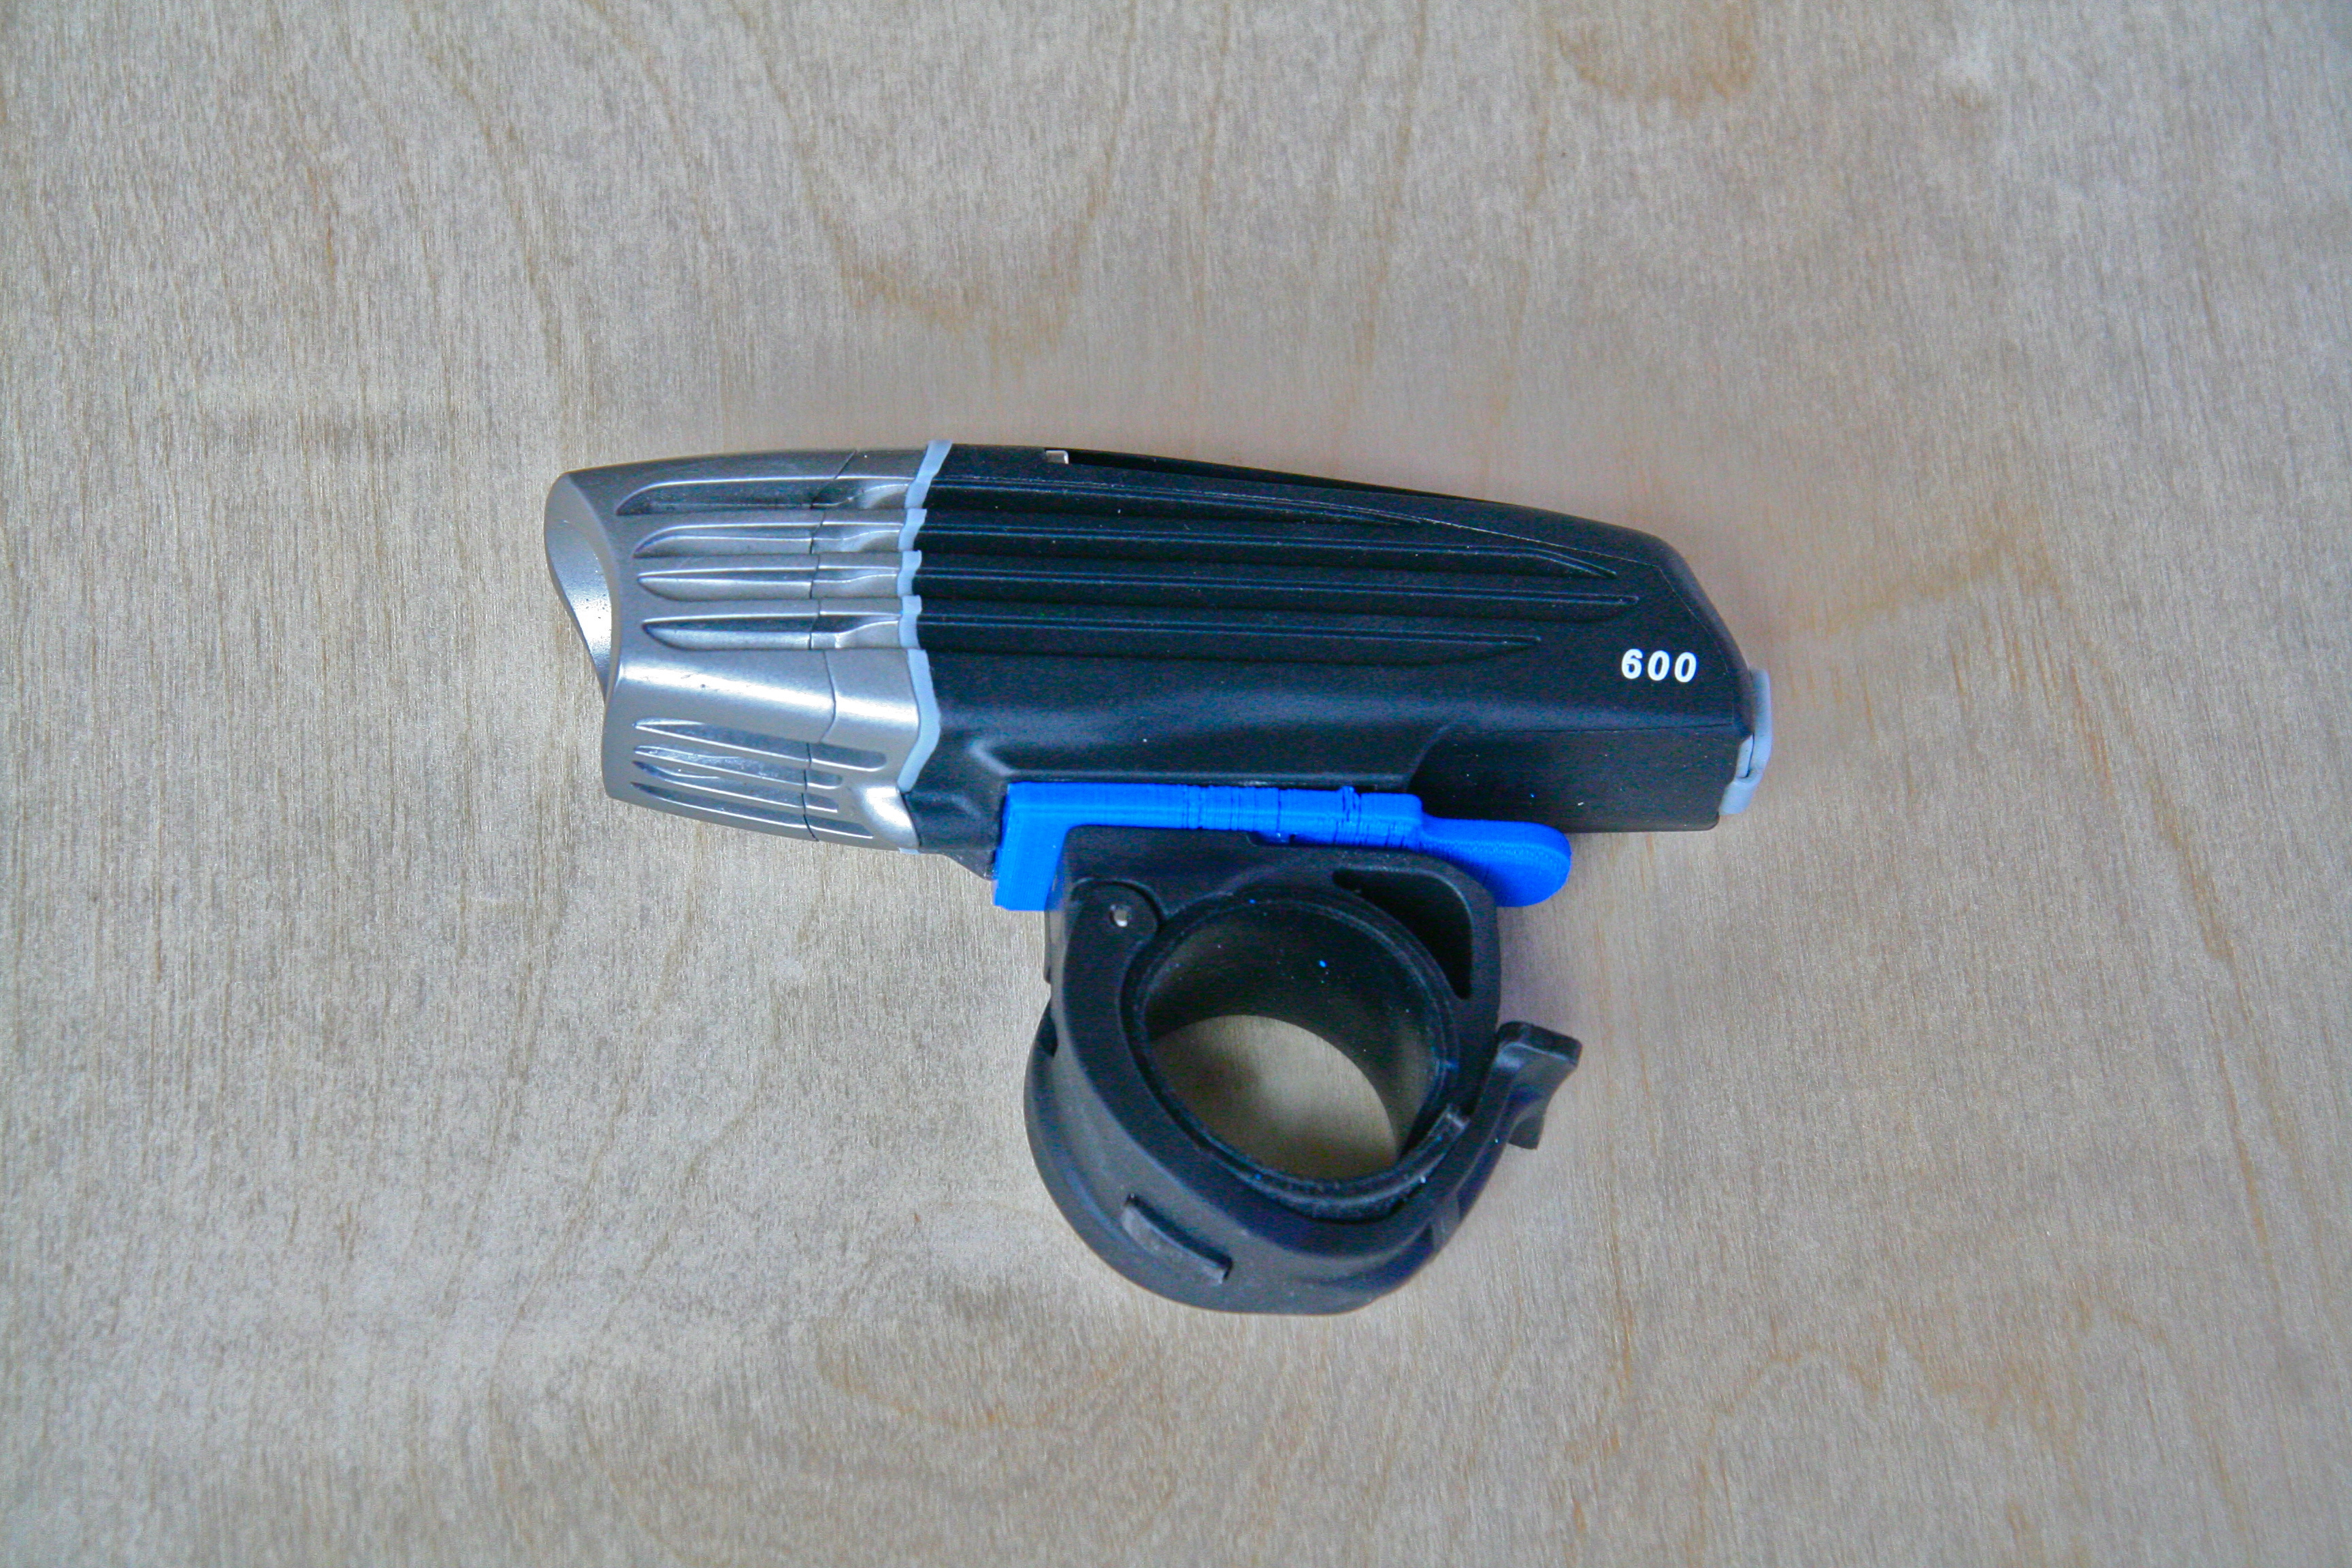 Repairing a Bike-Light Mount with 3D Printing